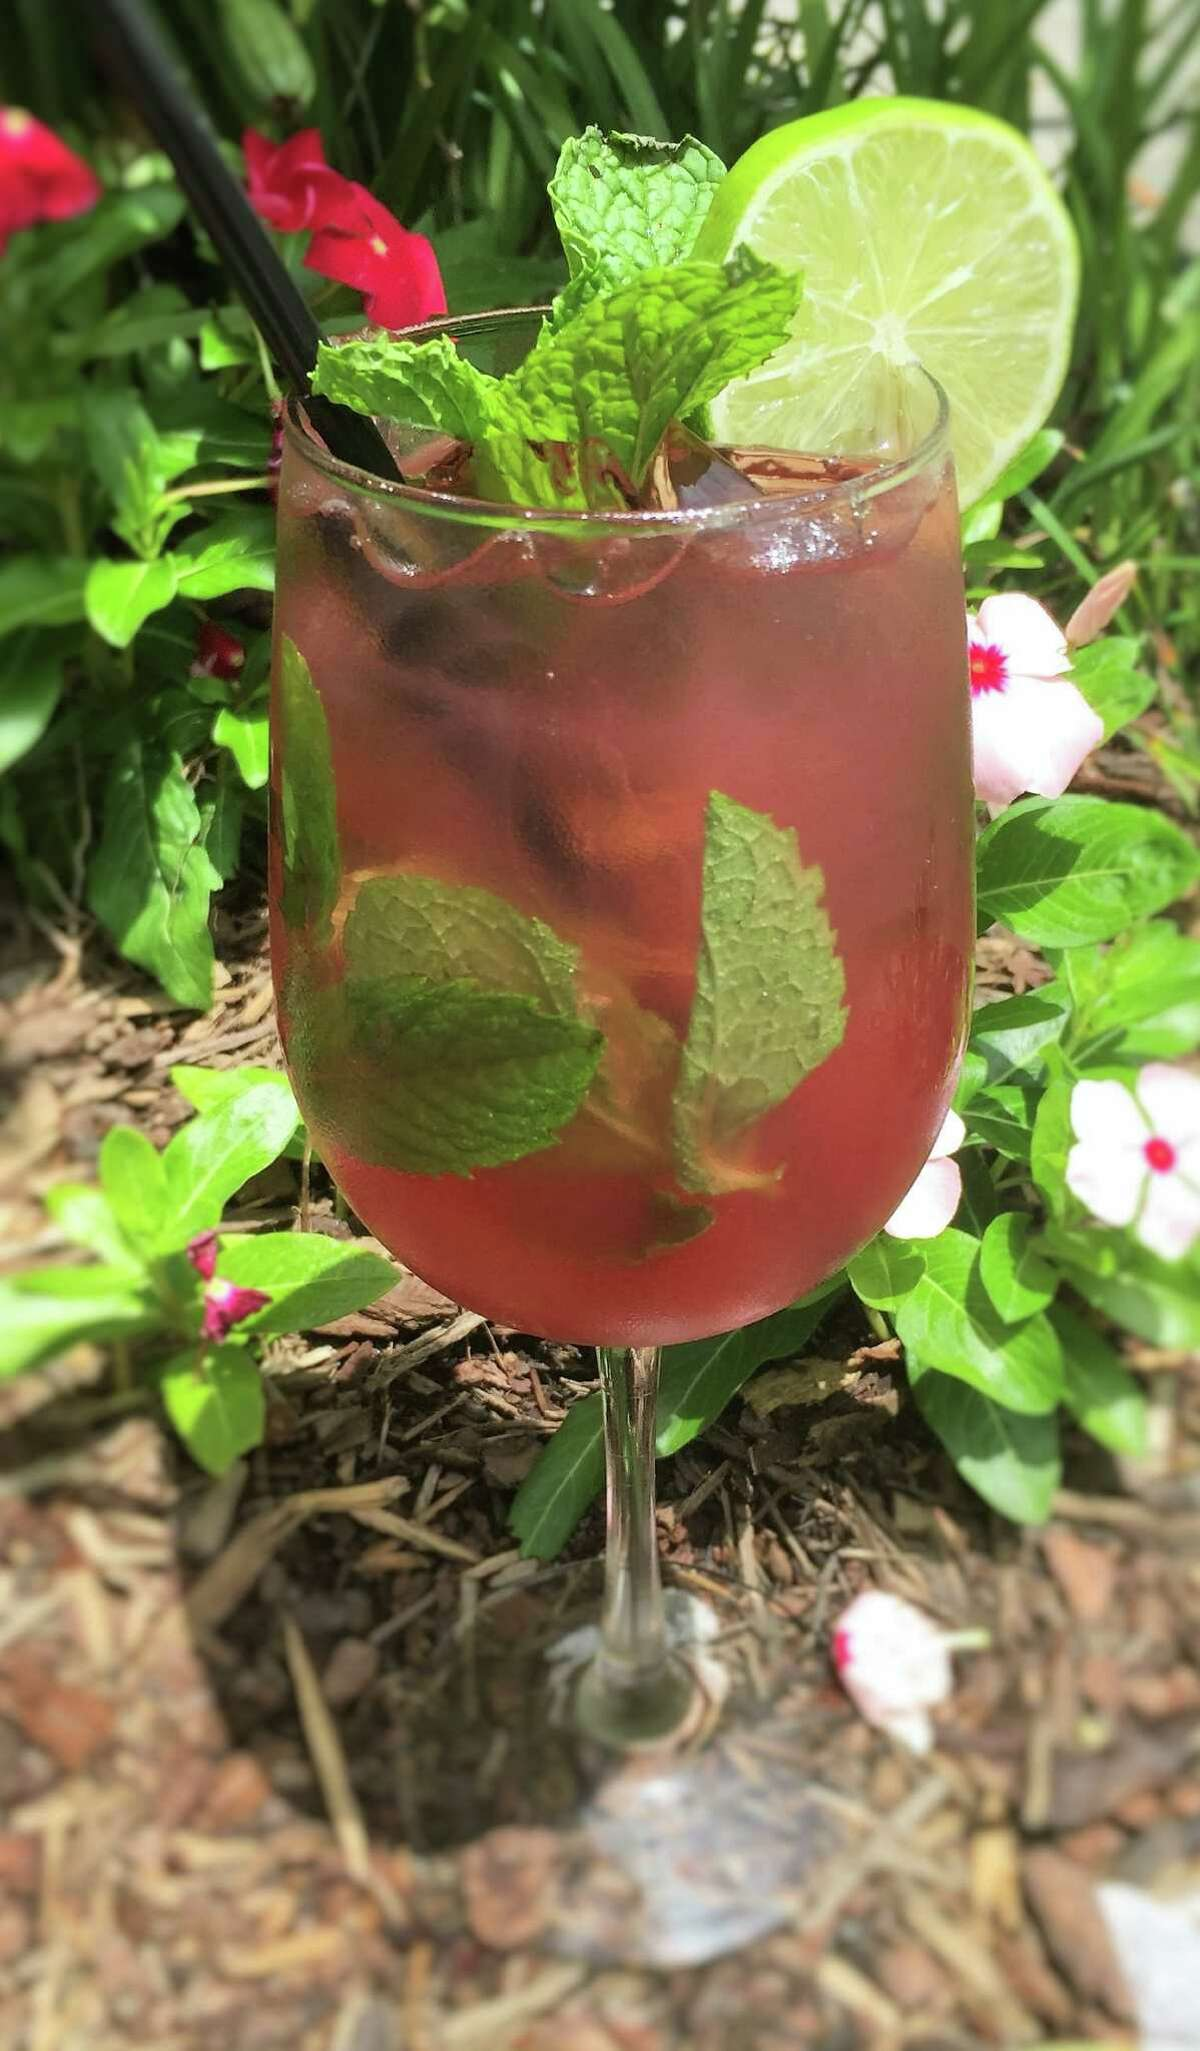 The Ouitea (passion fruit tea and vodka) from Ouisie's Table, Houston. Ouisie's Table is marking National Iced Tea Day, June 10, with iced tea cocktails.